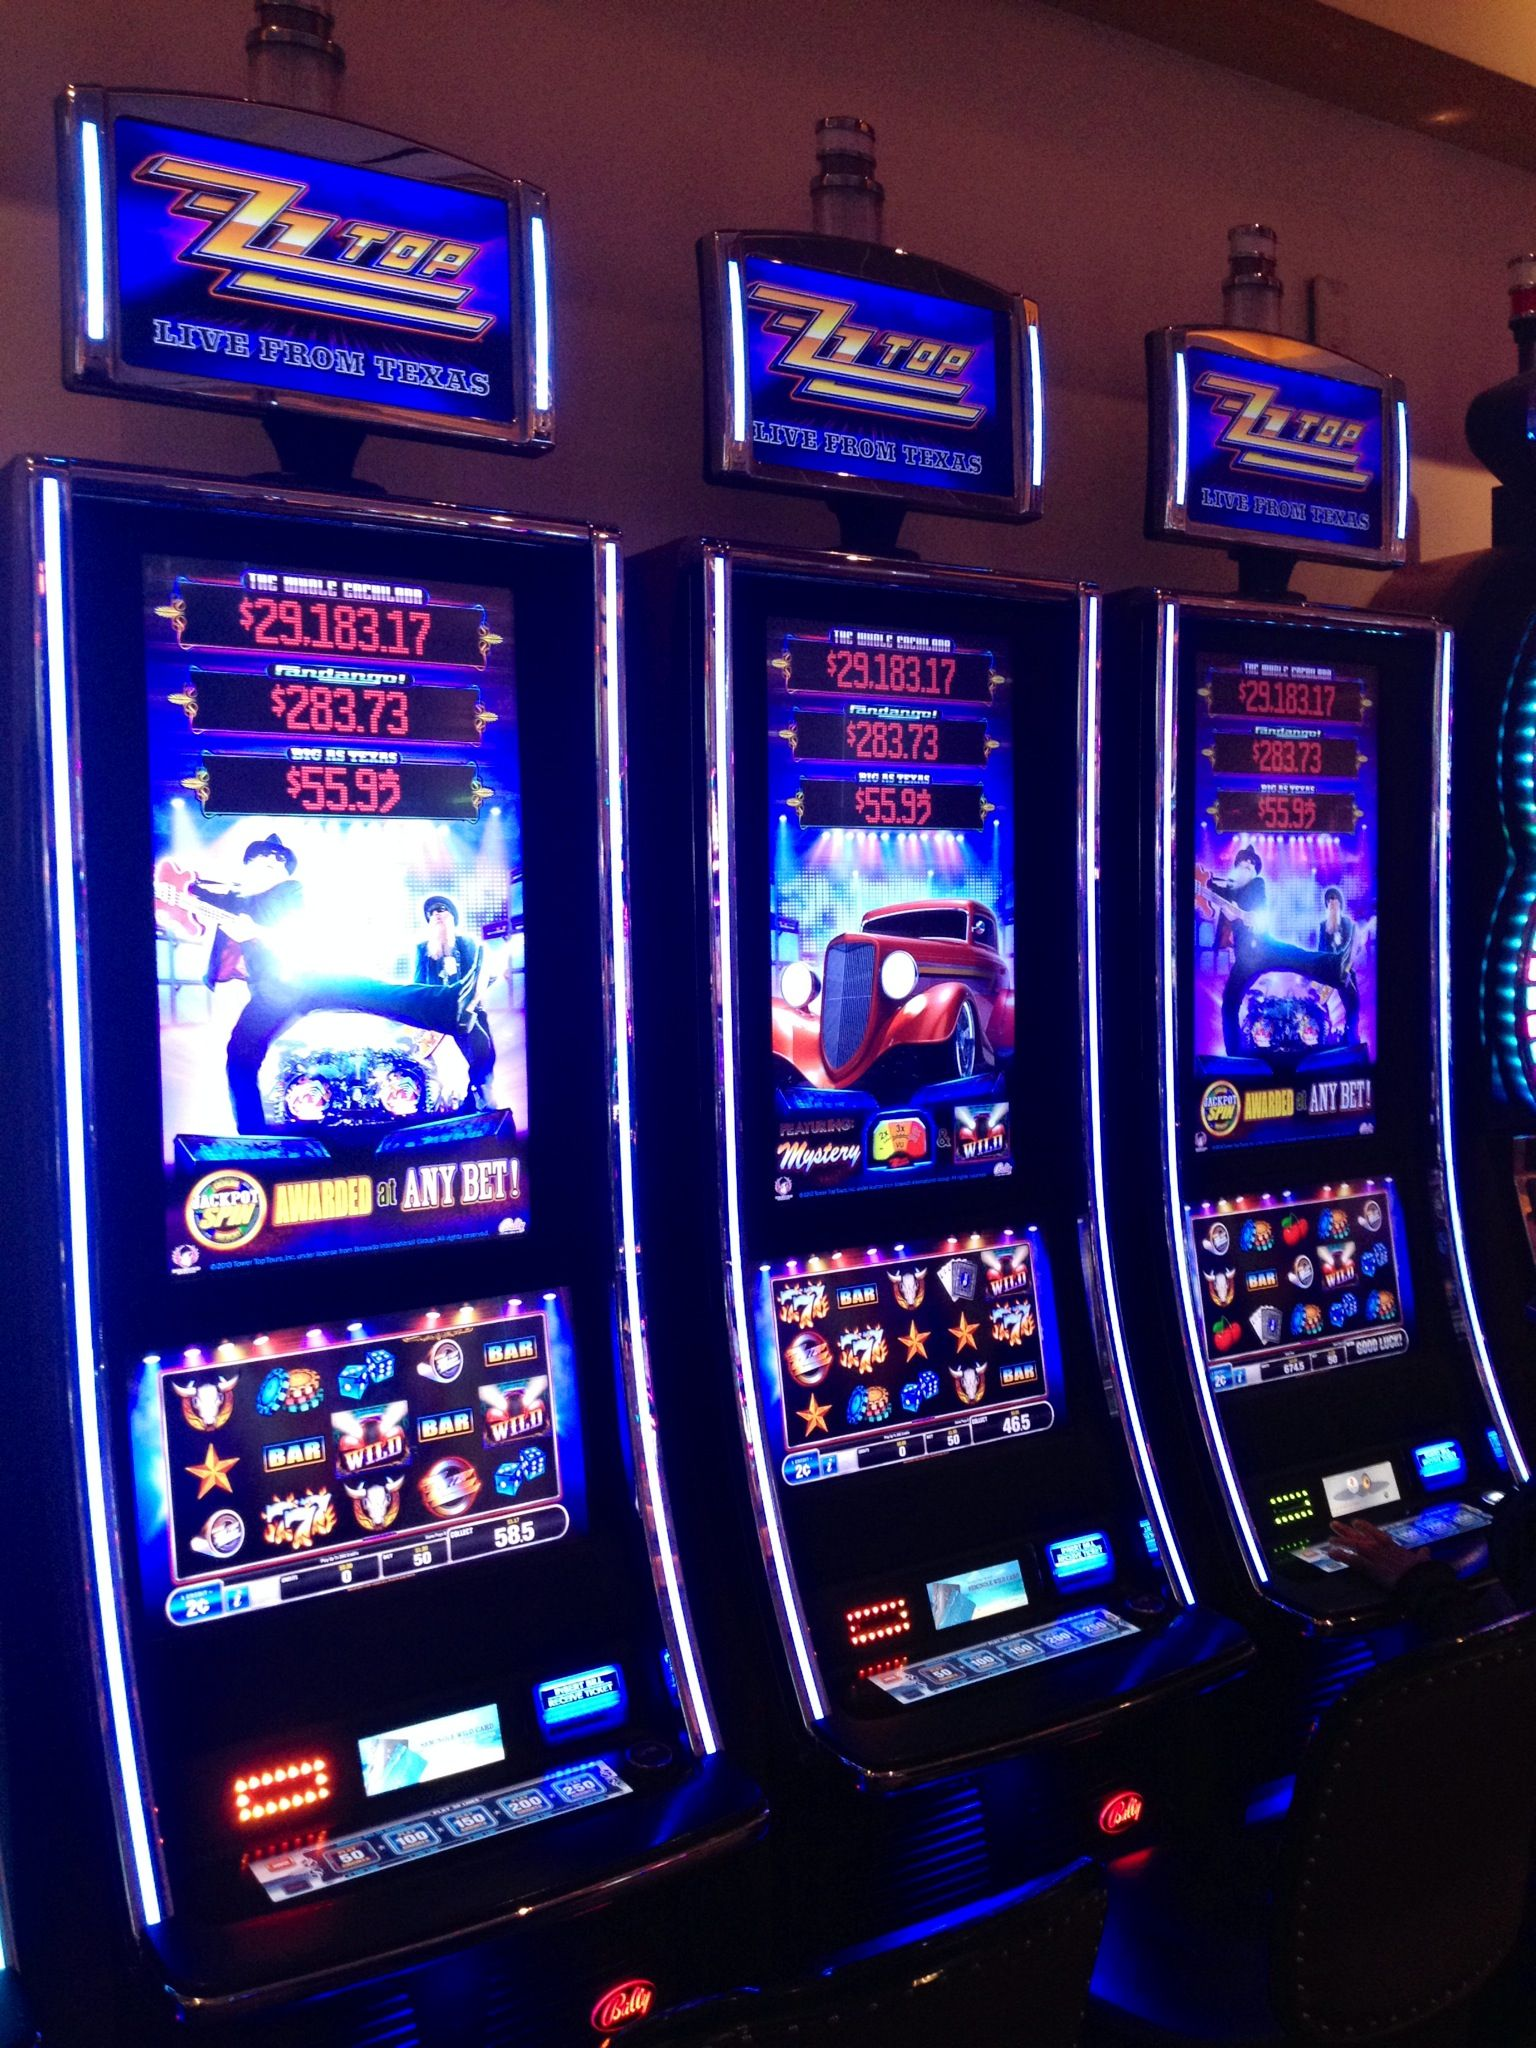 Zz top online slot machine slotted draincoil